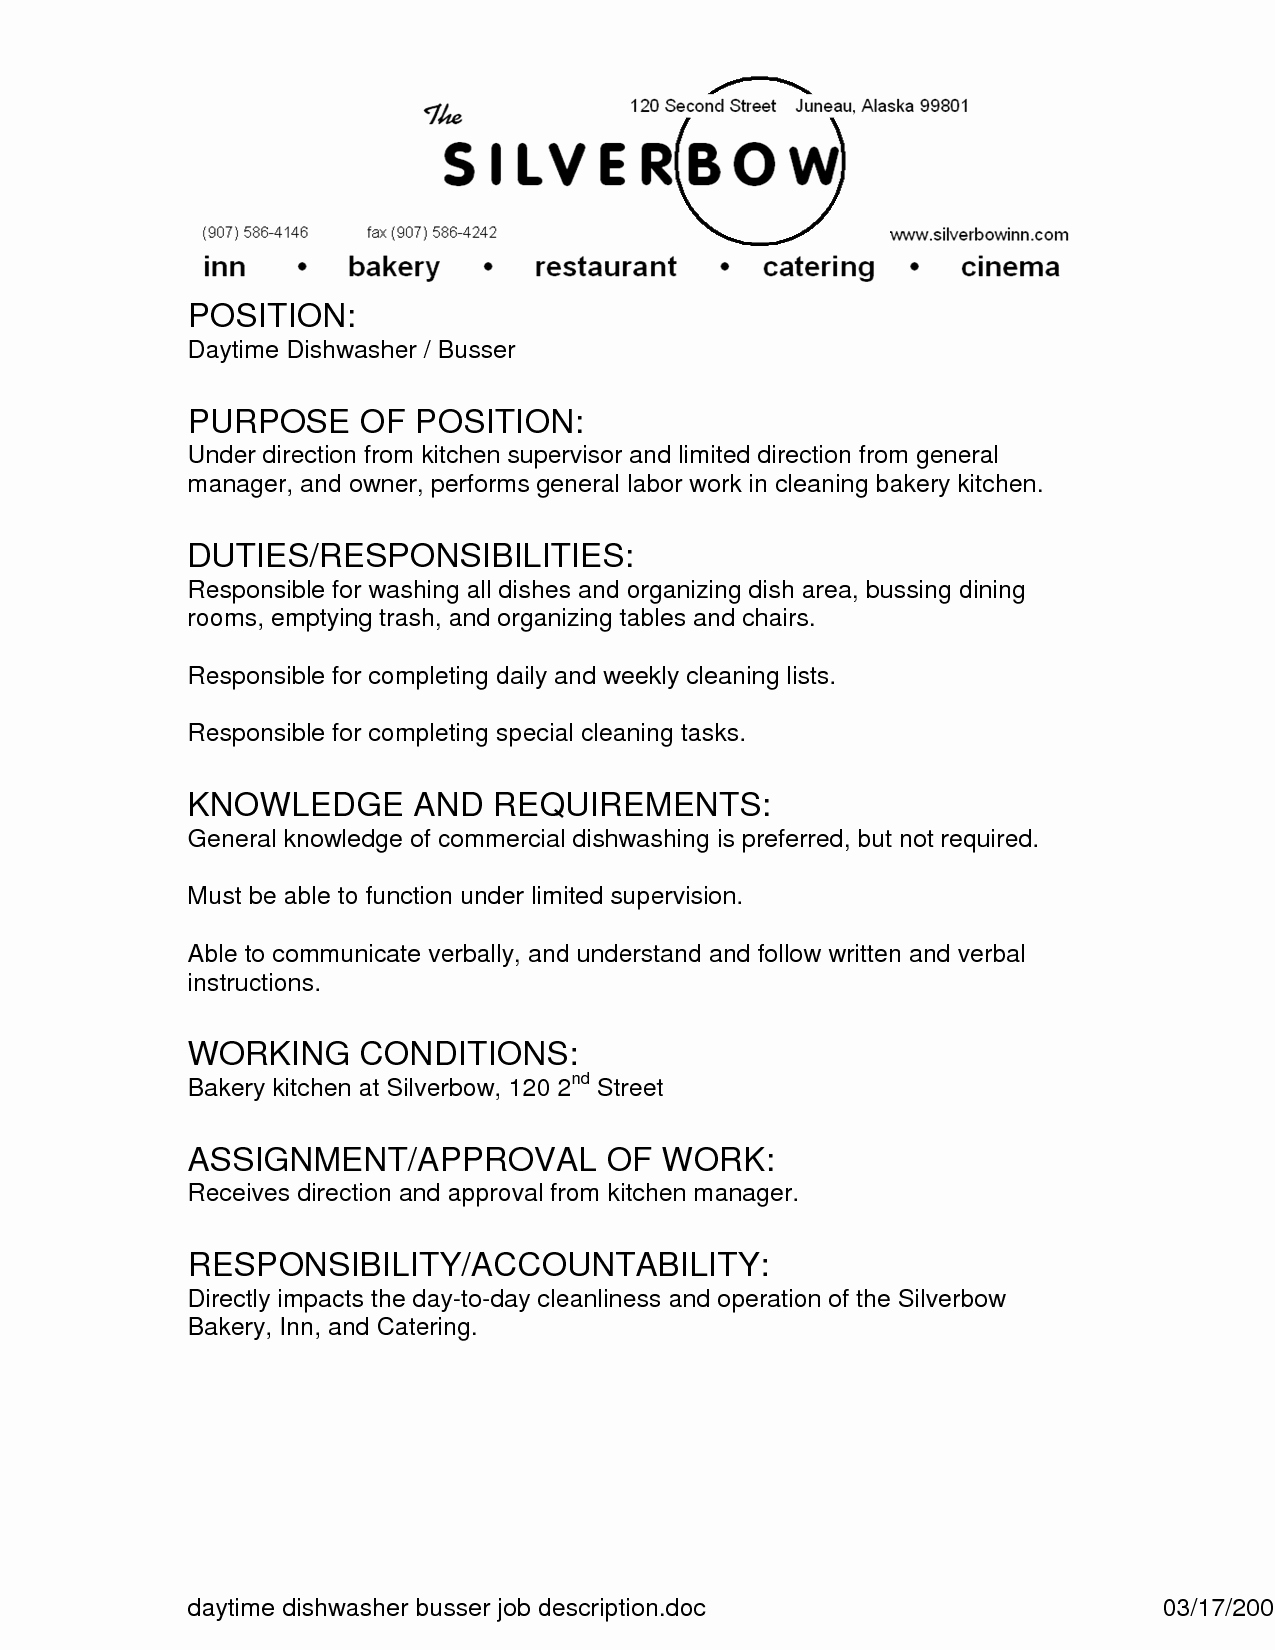 Classy Job Descriptions for Resumes for Your Busser Resume